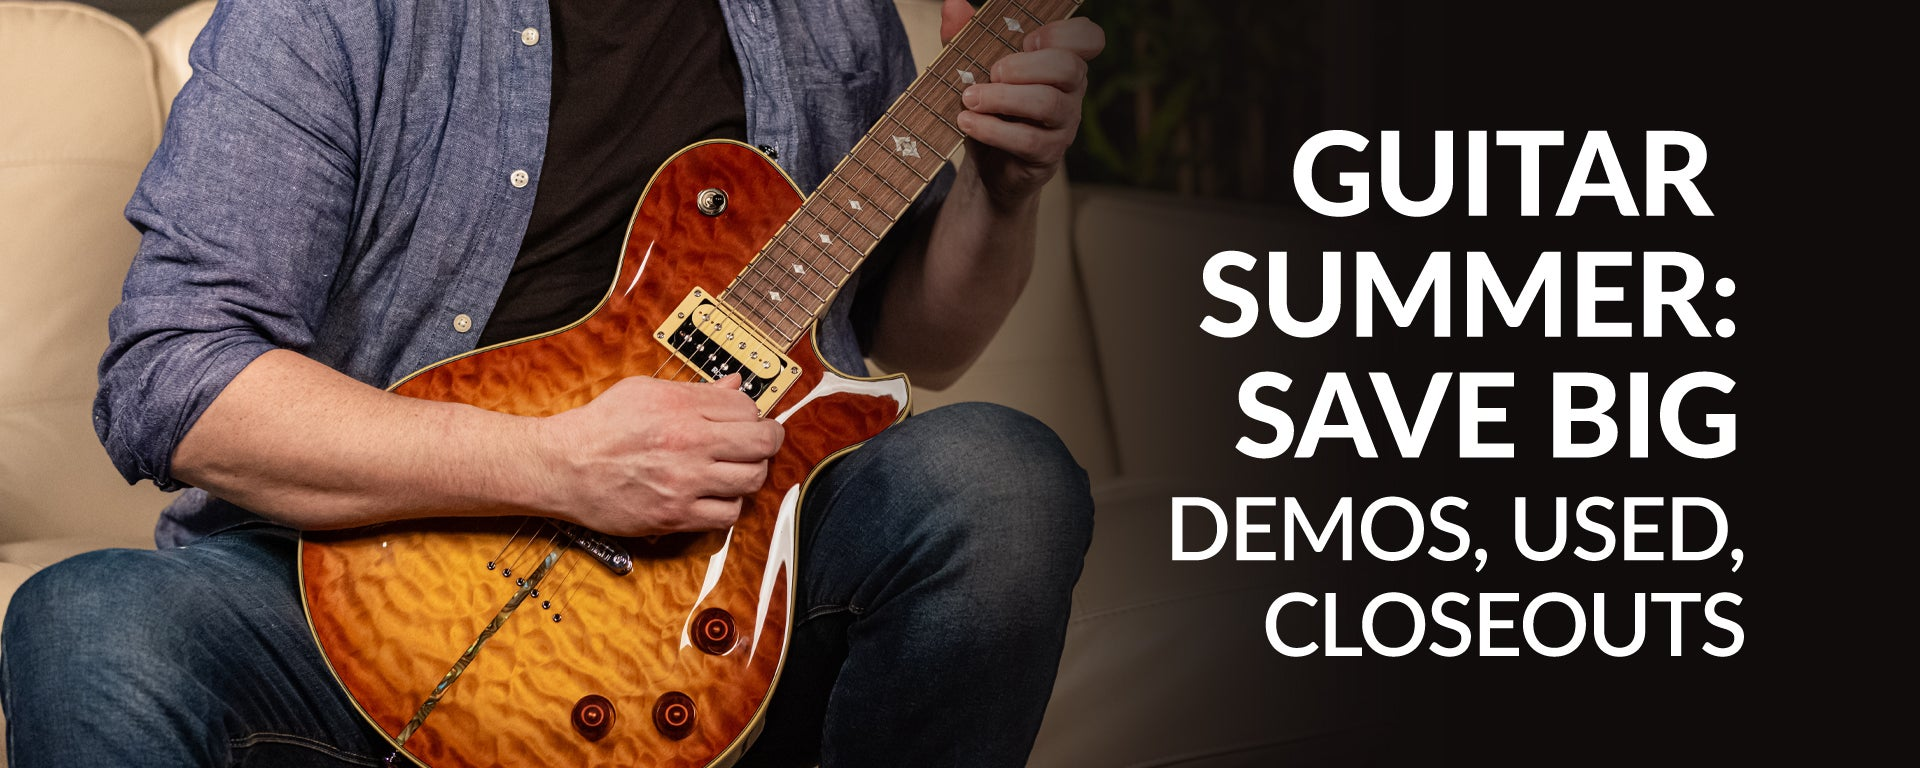 Guitar Summer! Save big on demos, used and closeouts!